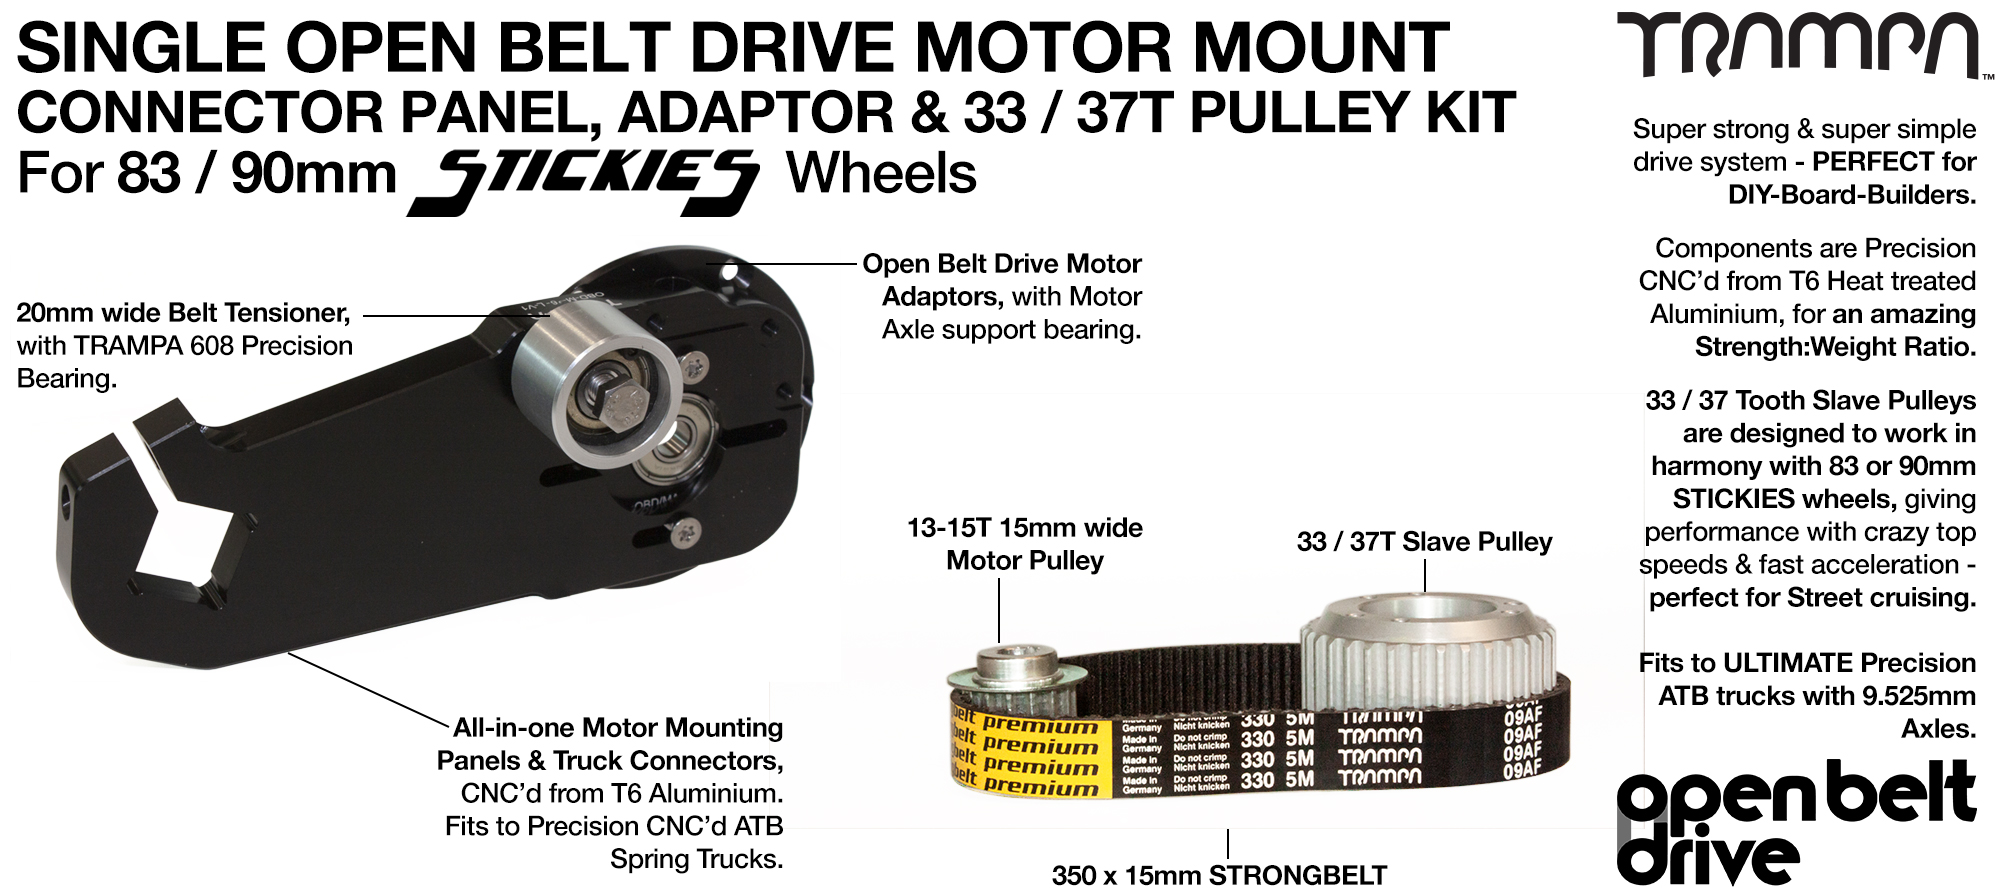 66T OBD Motor Mount & 33 / 37 tooth Pulley for STICKIES Wheels - SINGLE